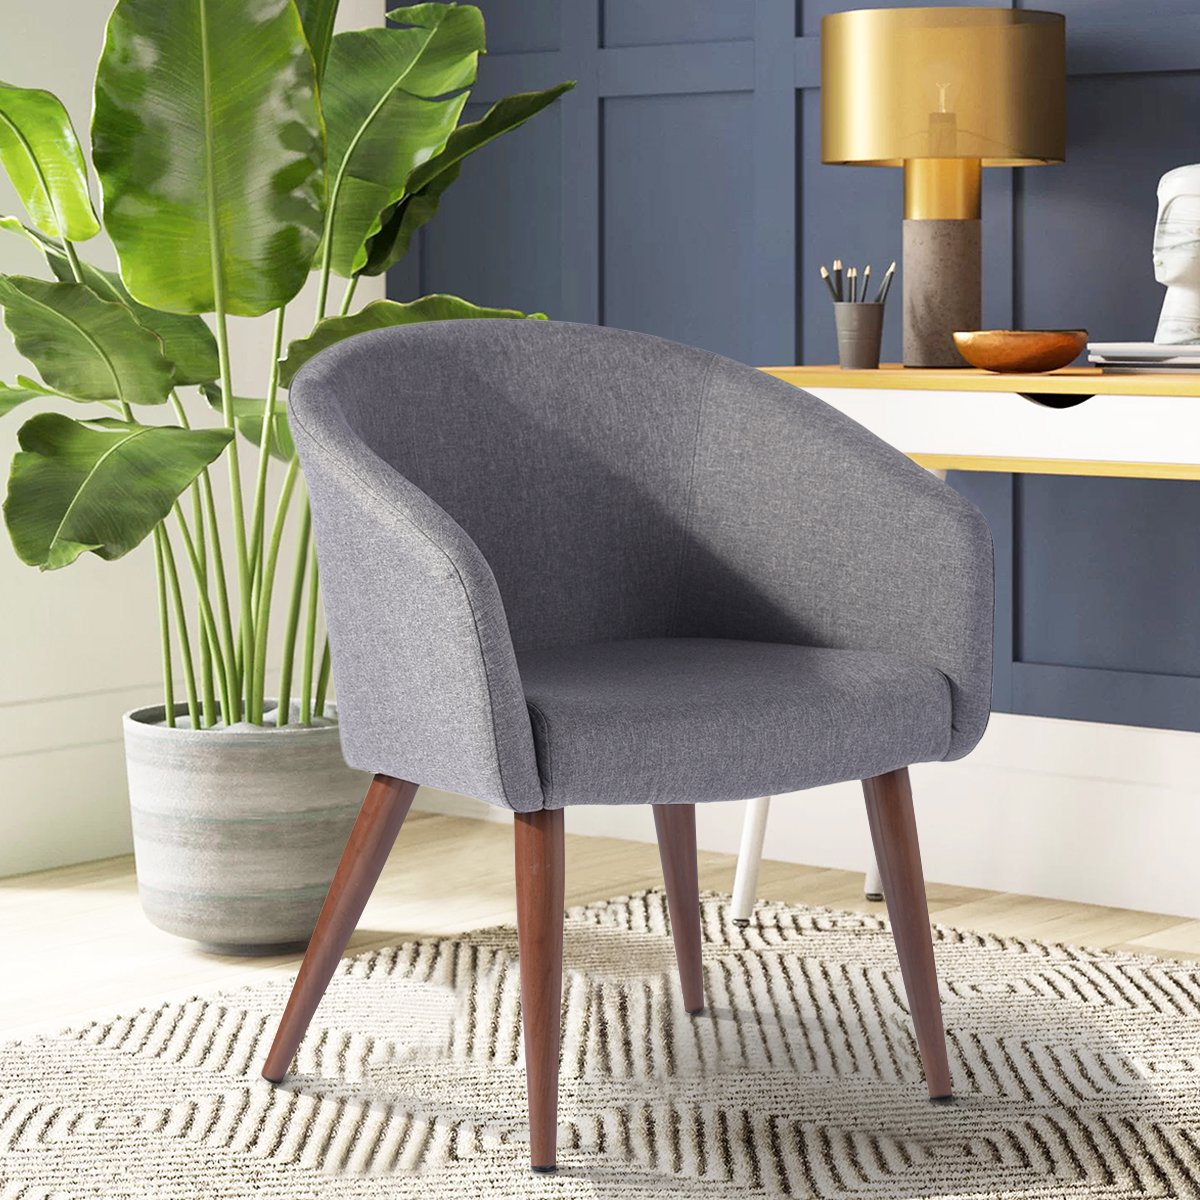 Furniture R Leisure Side Chairs Fabric, Side Chairs For Living Room